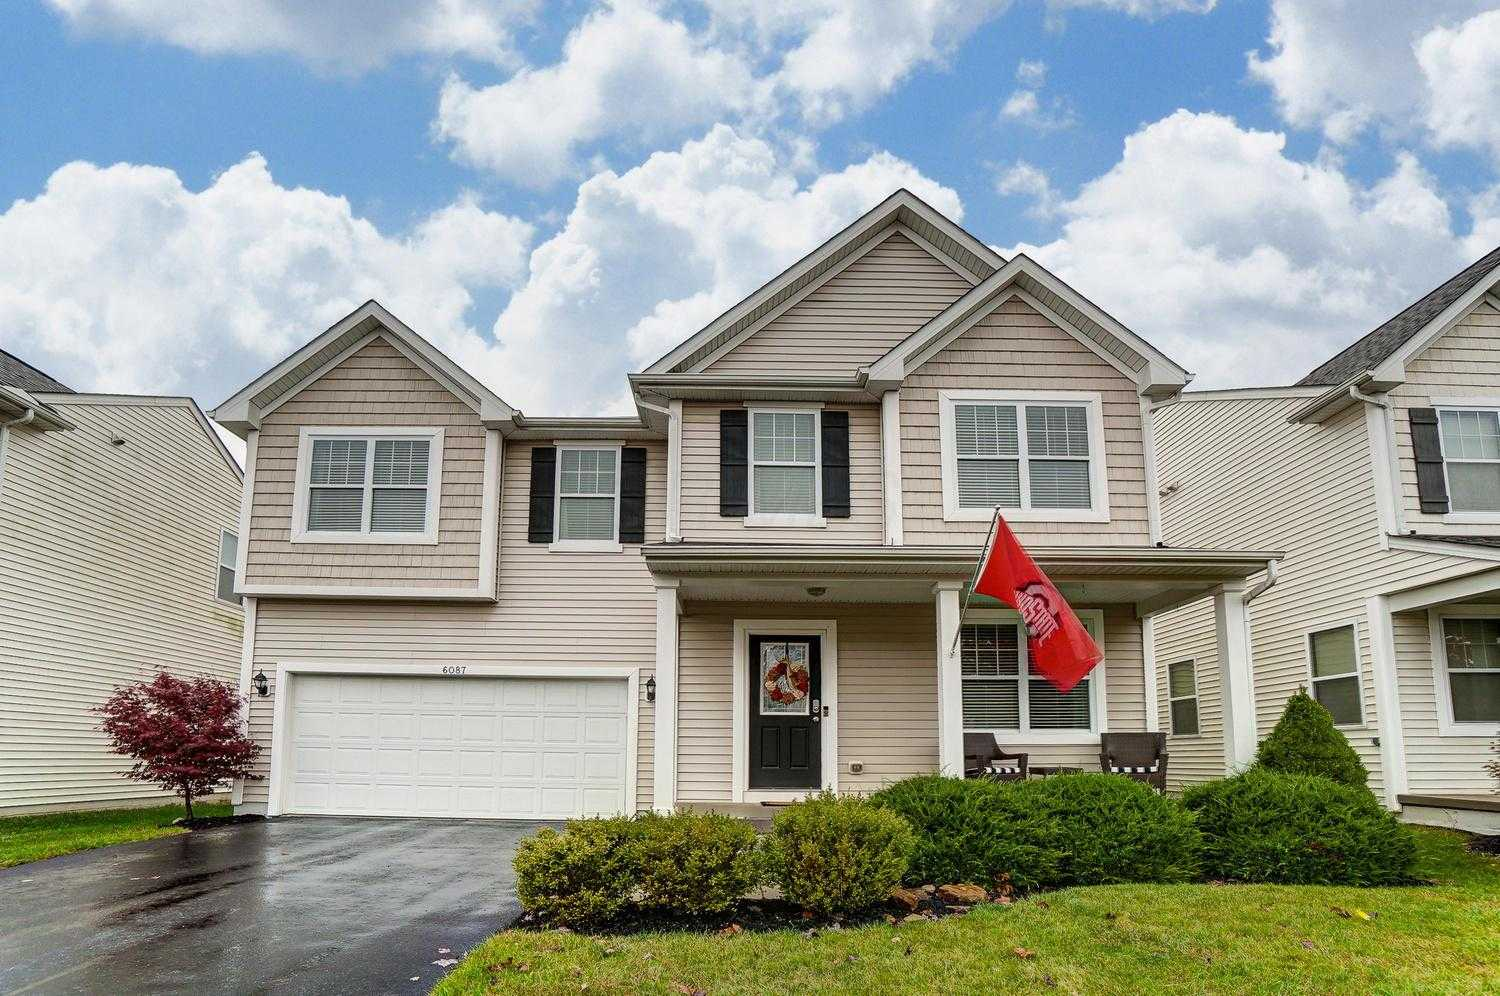 6087 Witherspoon Way Westerville,OH 43081 219041414